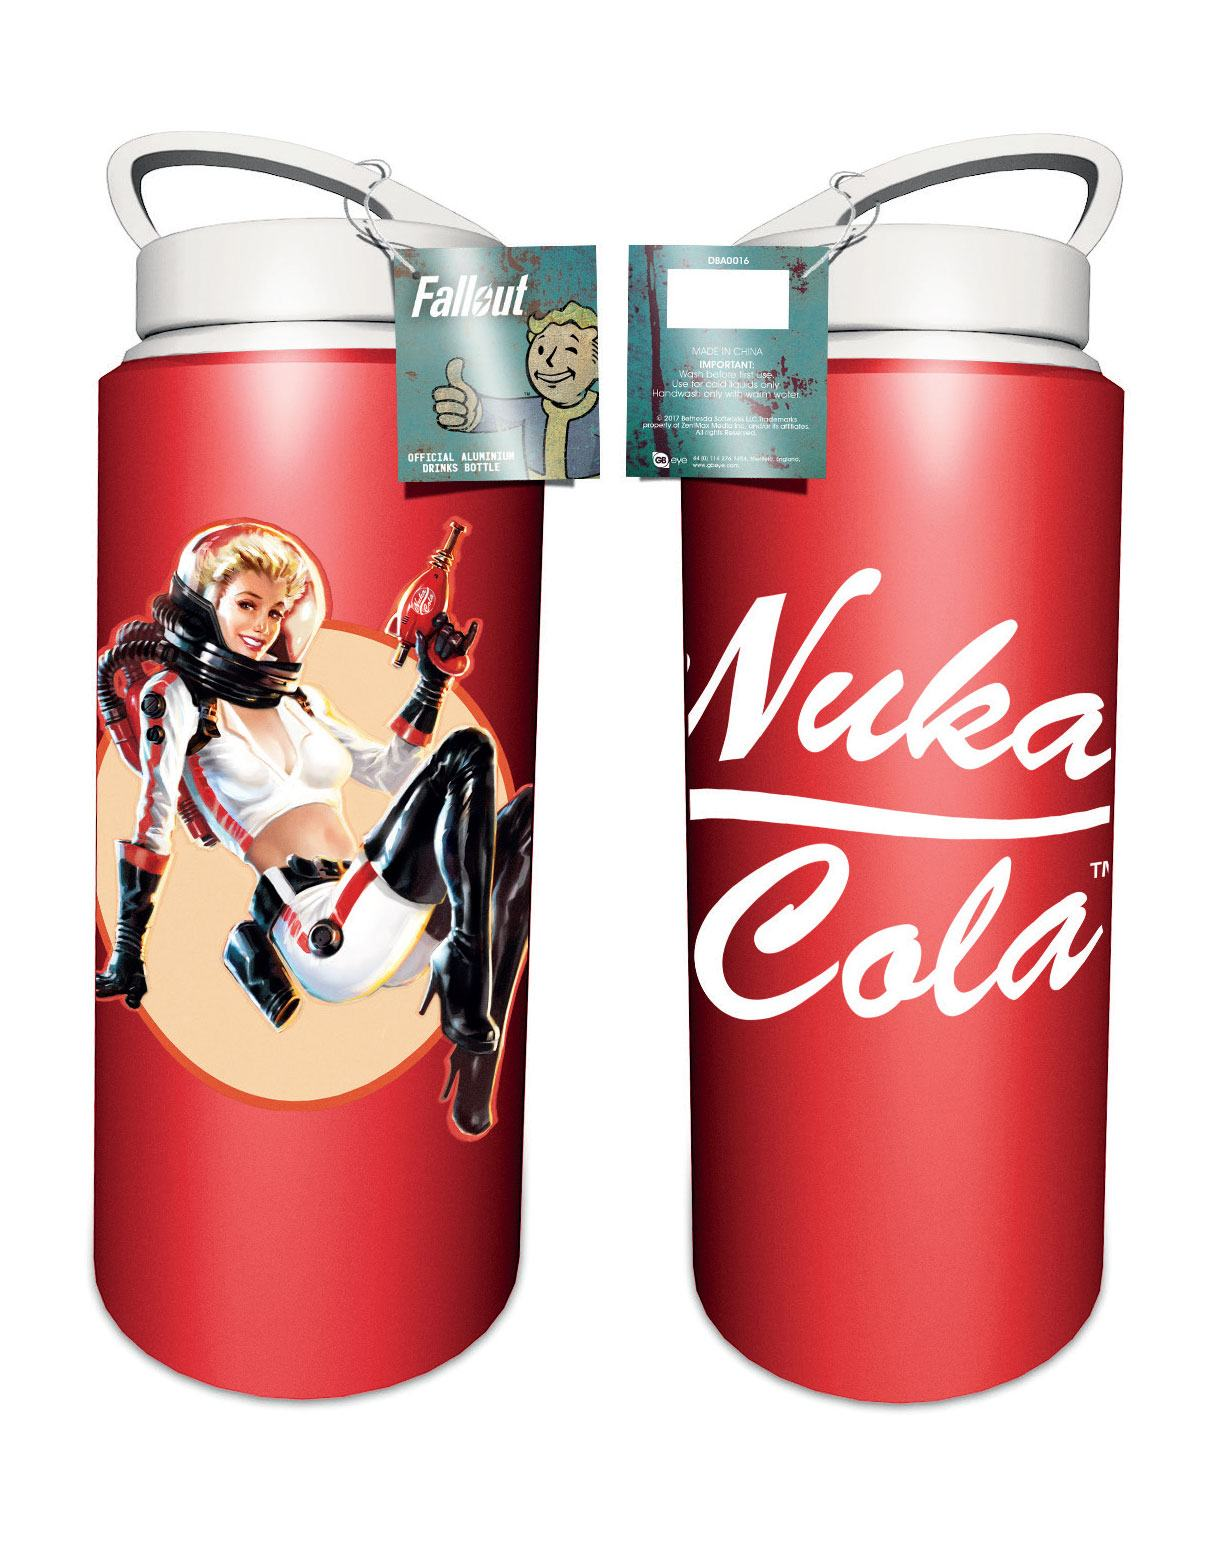 Fallout Drink Bottle Nuka Cola